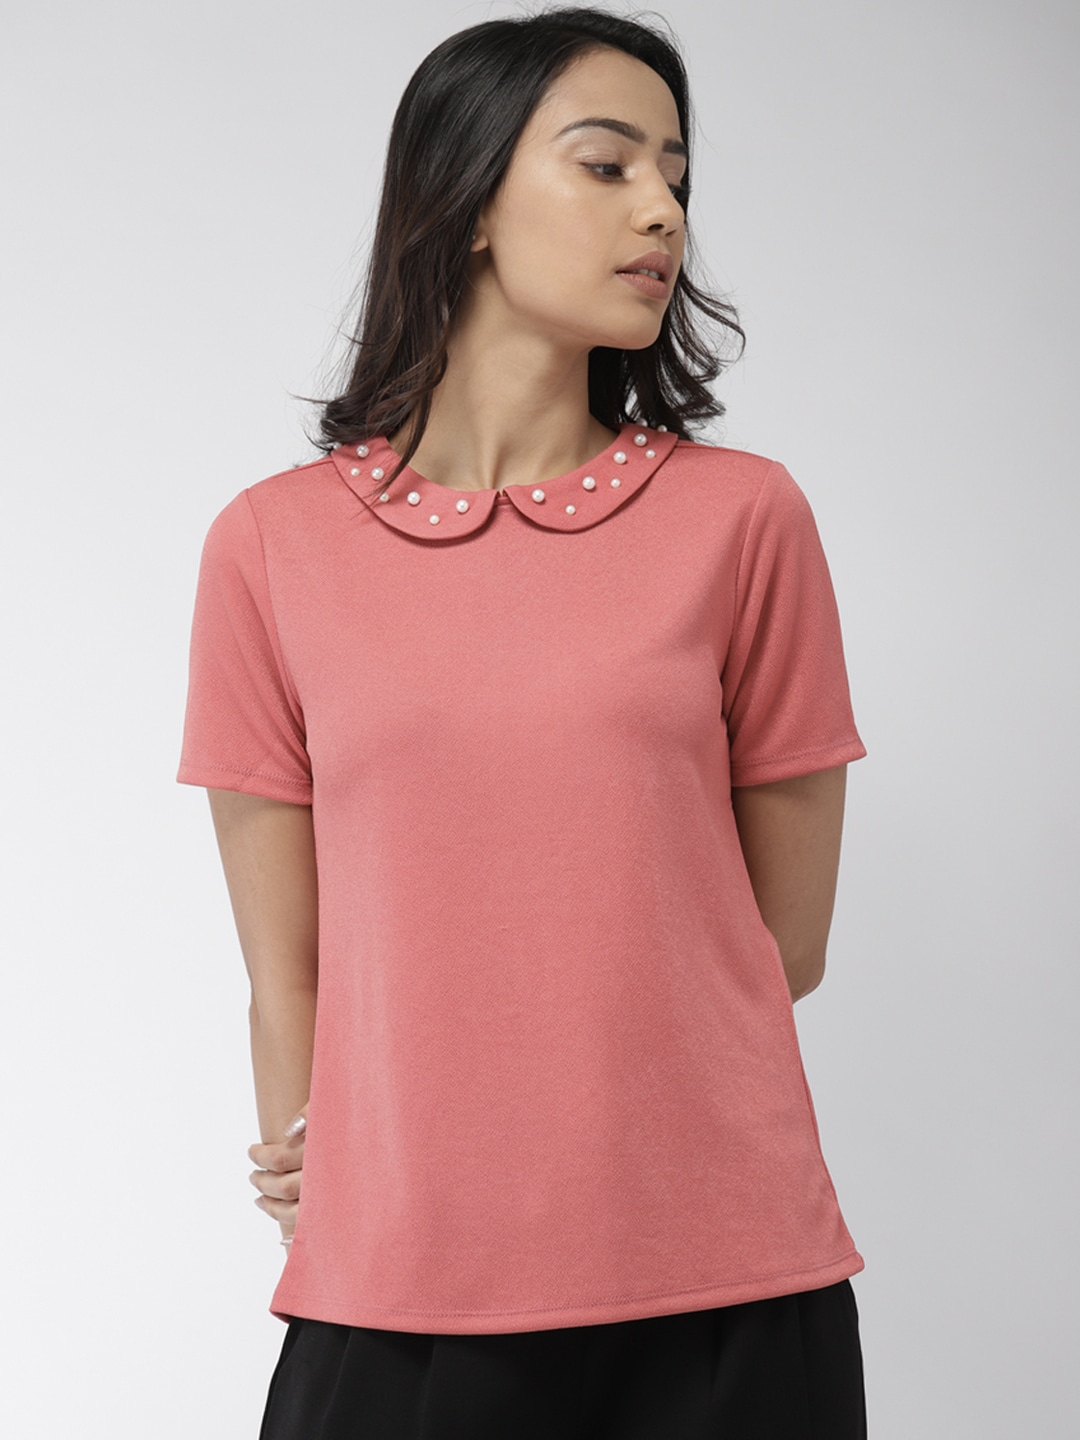 fff7989e69dc Polyester Tops -Buy Polyester Top for Women   Girls Online